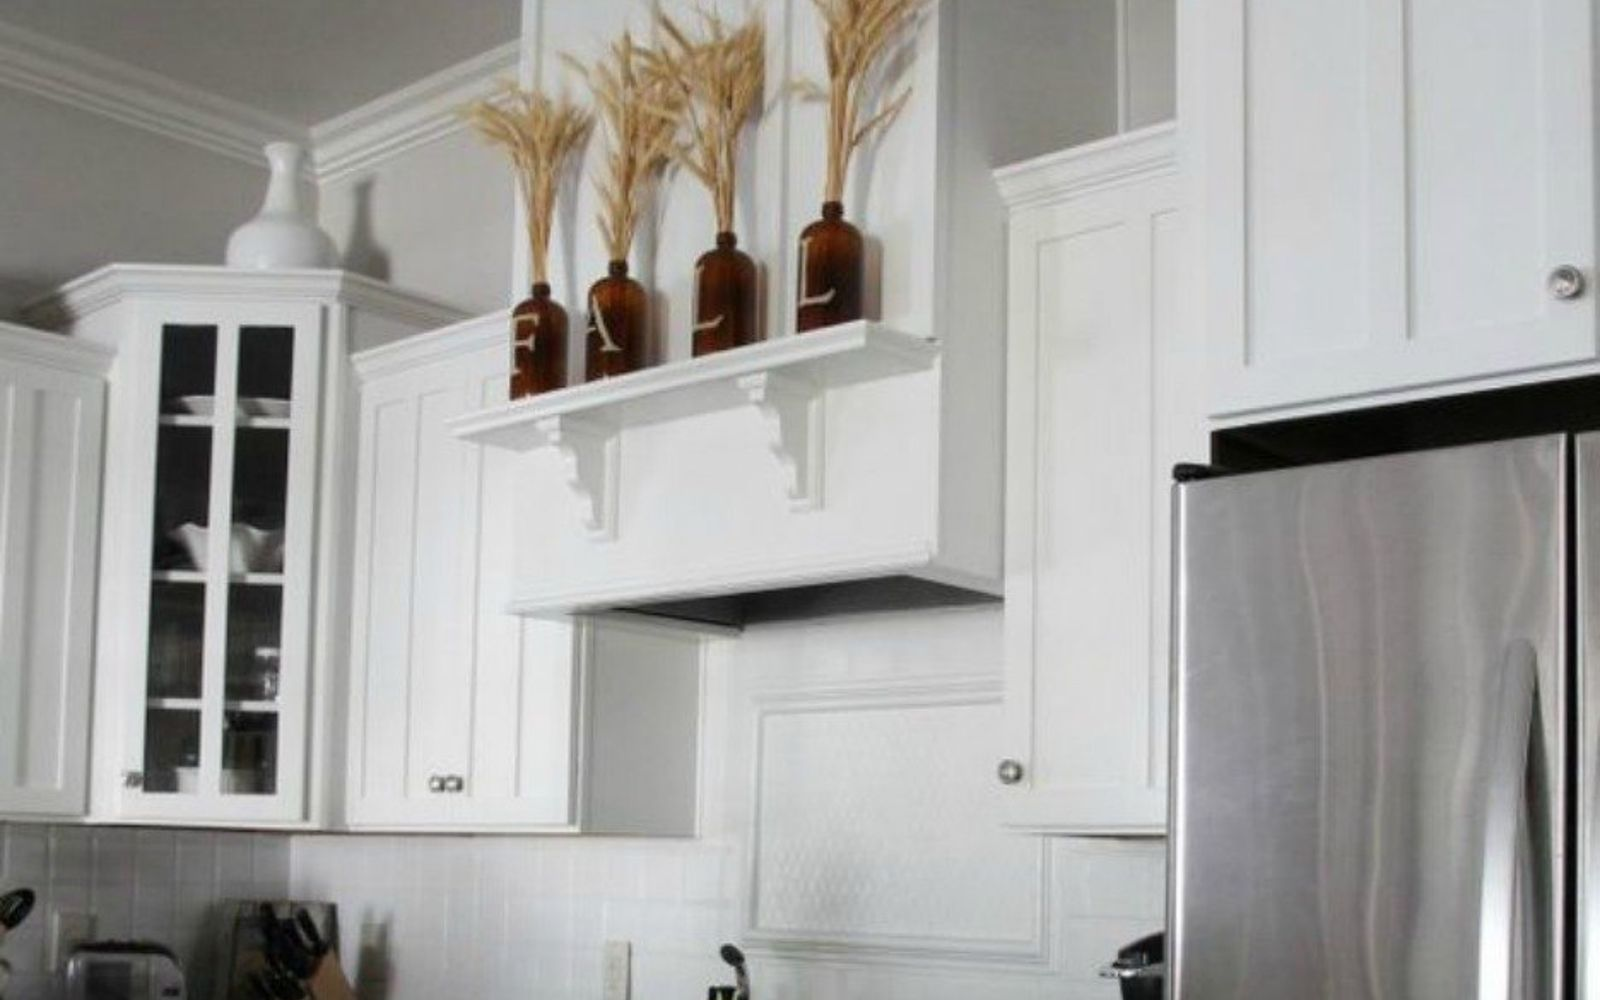 Fake A Gorgeous Built-In Kitchen With These 13 Hacks